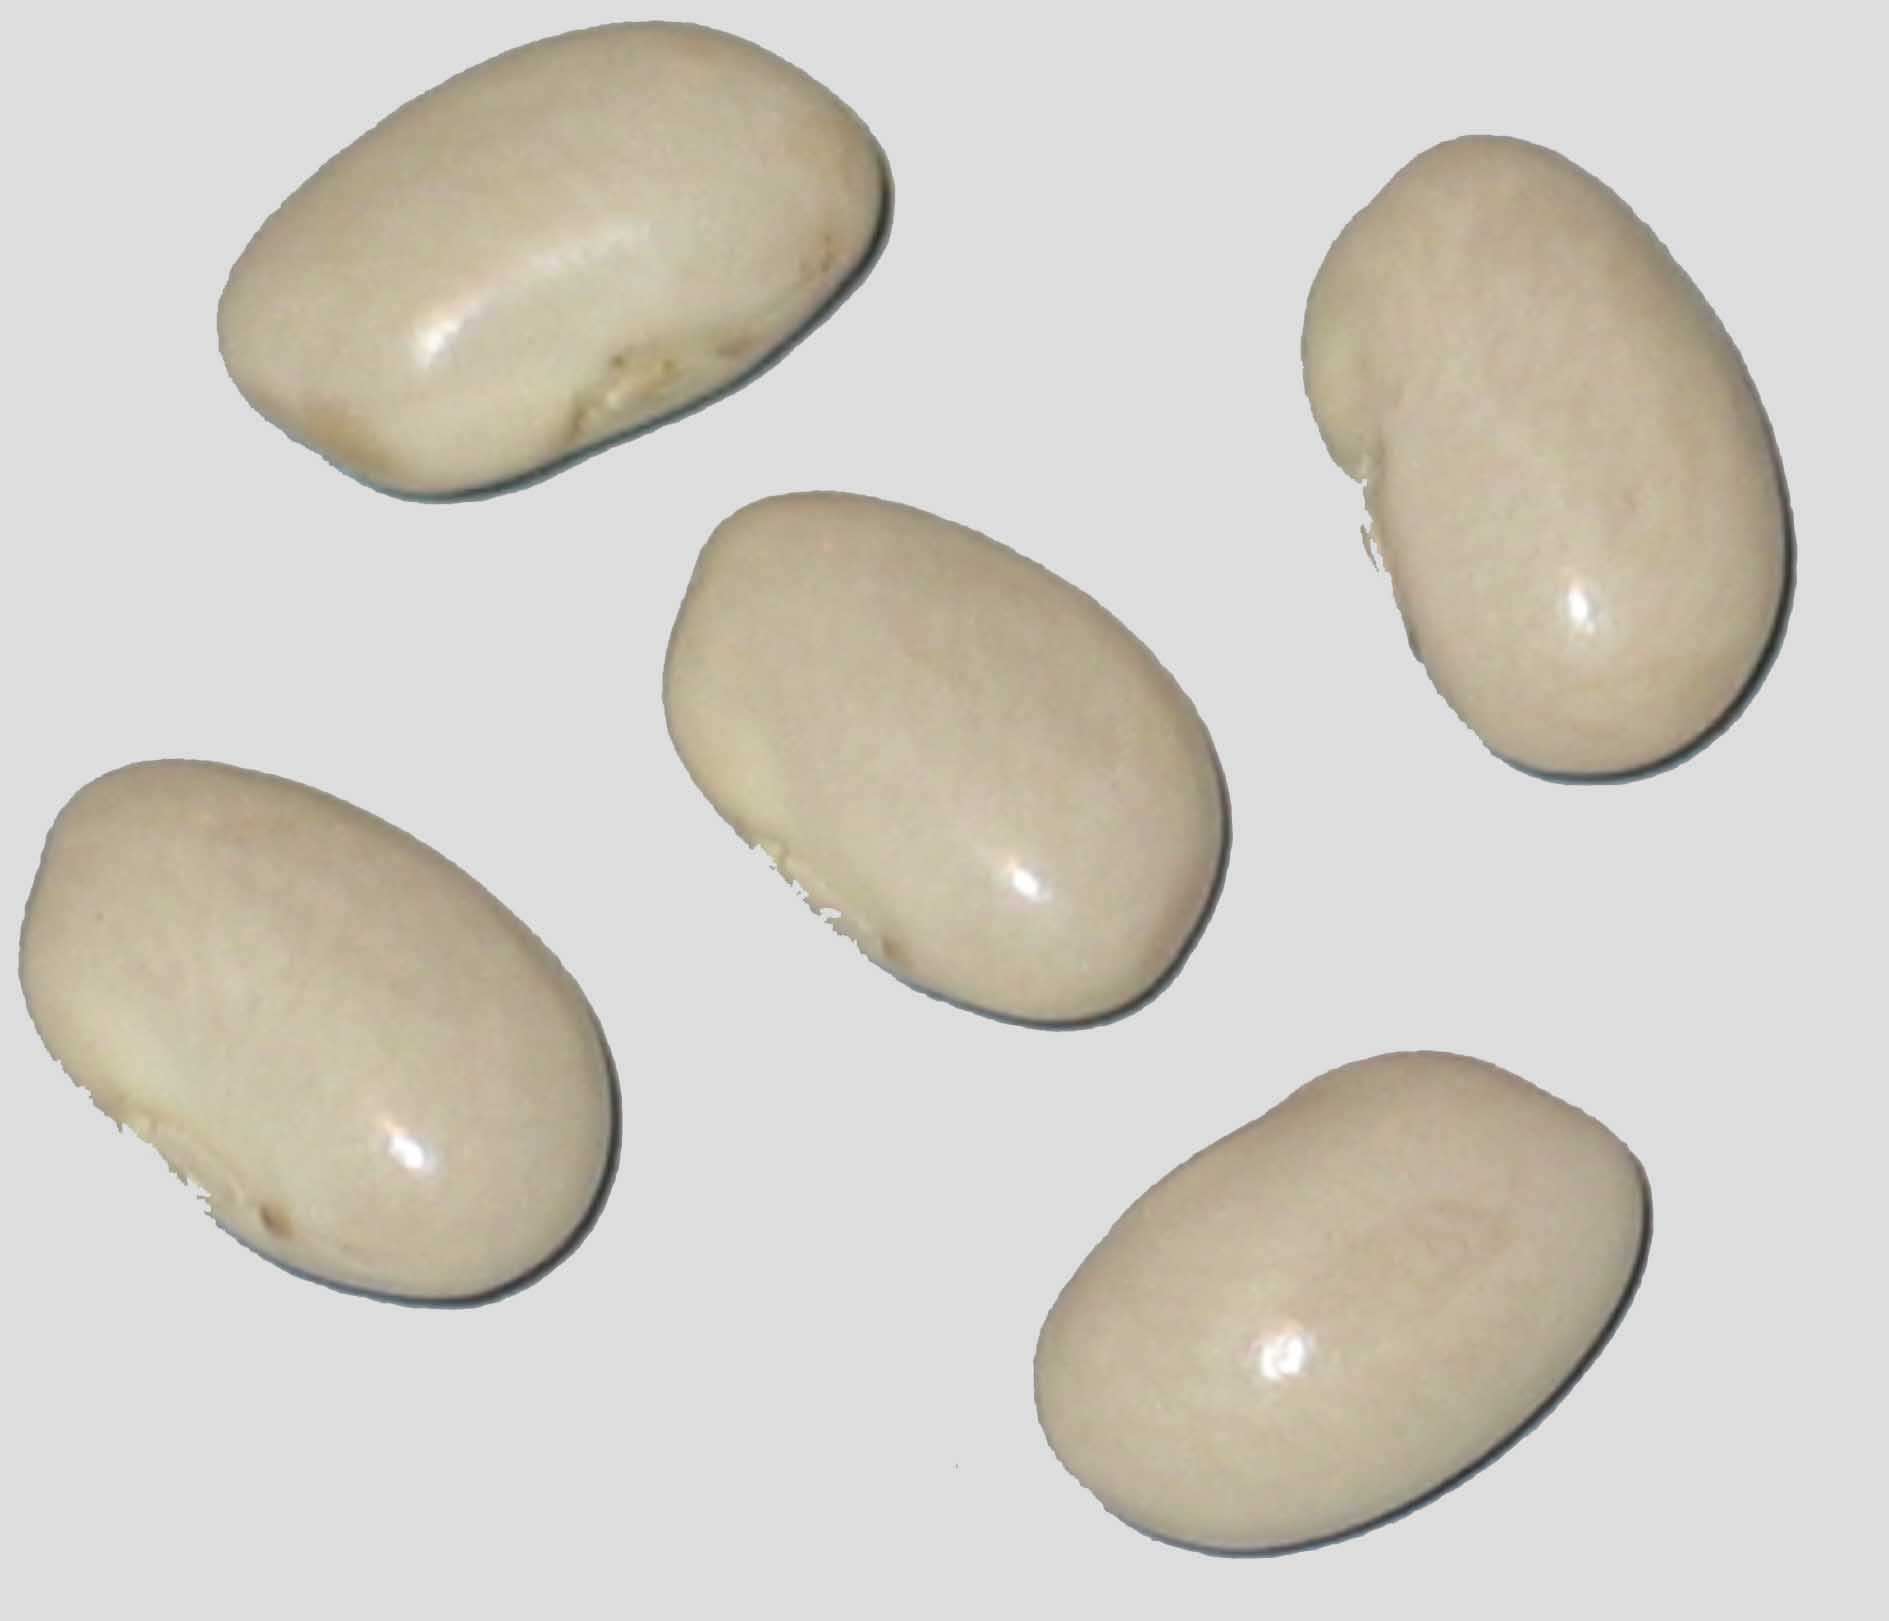 image of Starlite beans